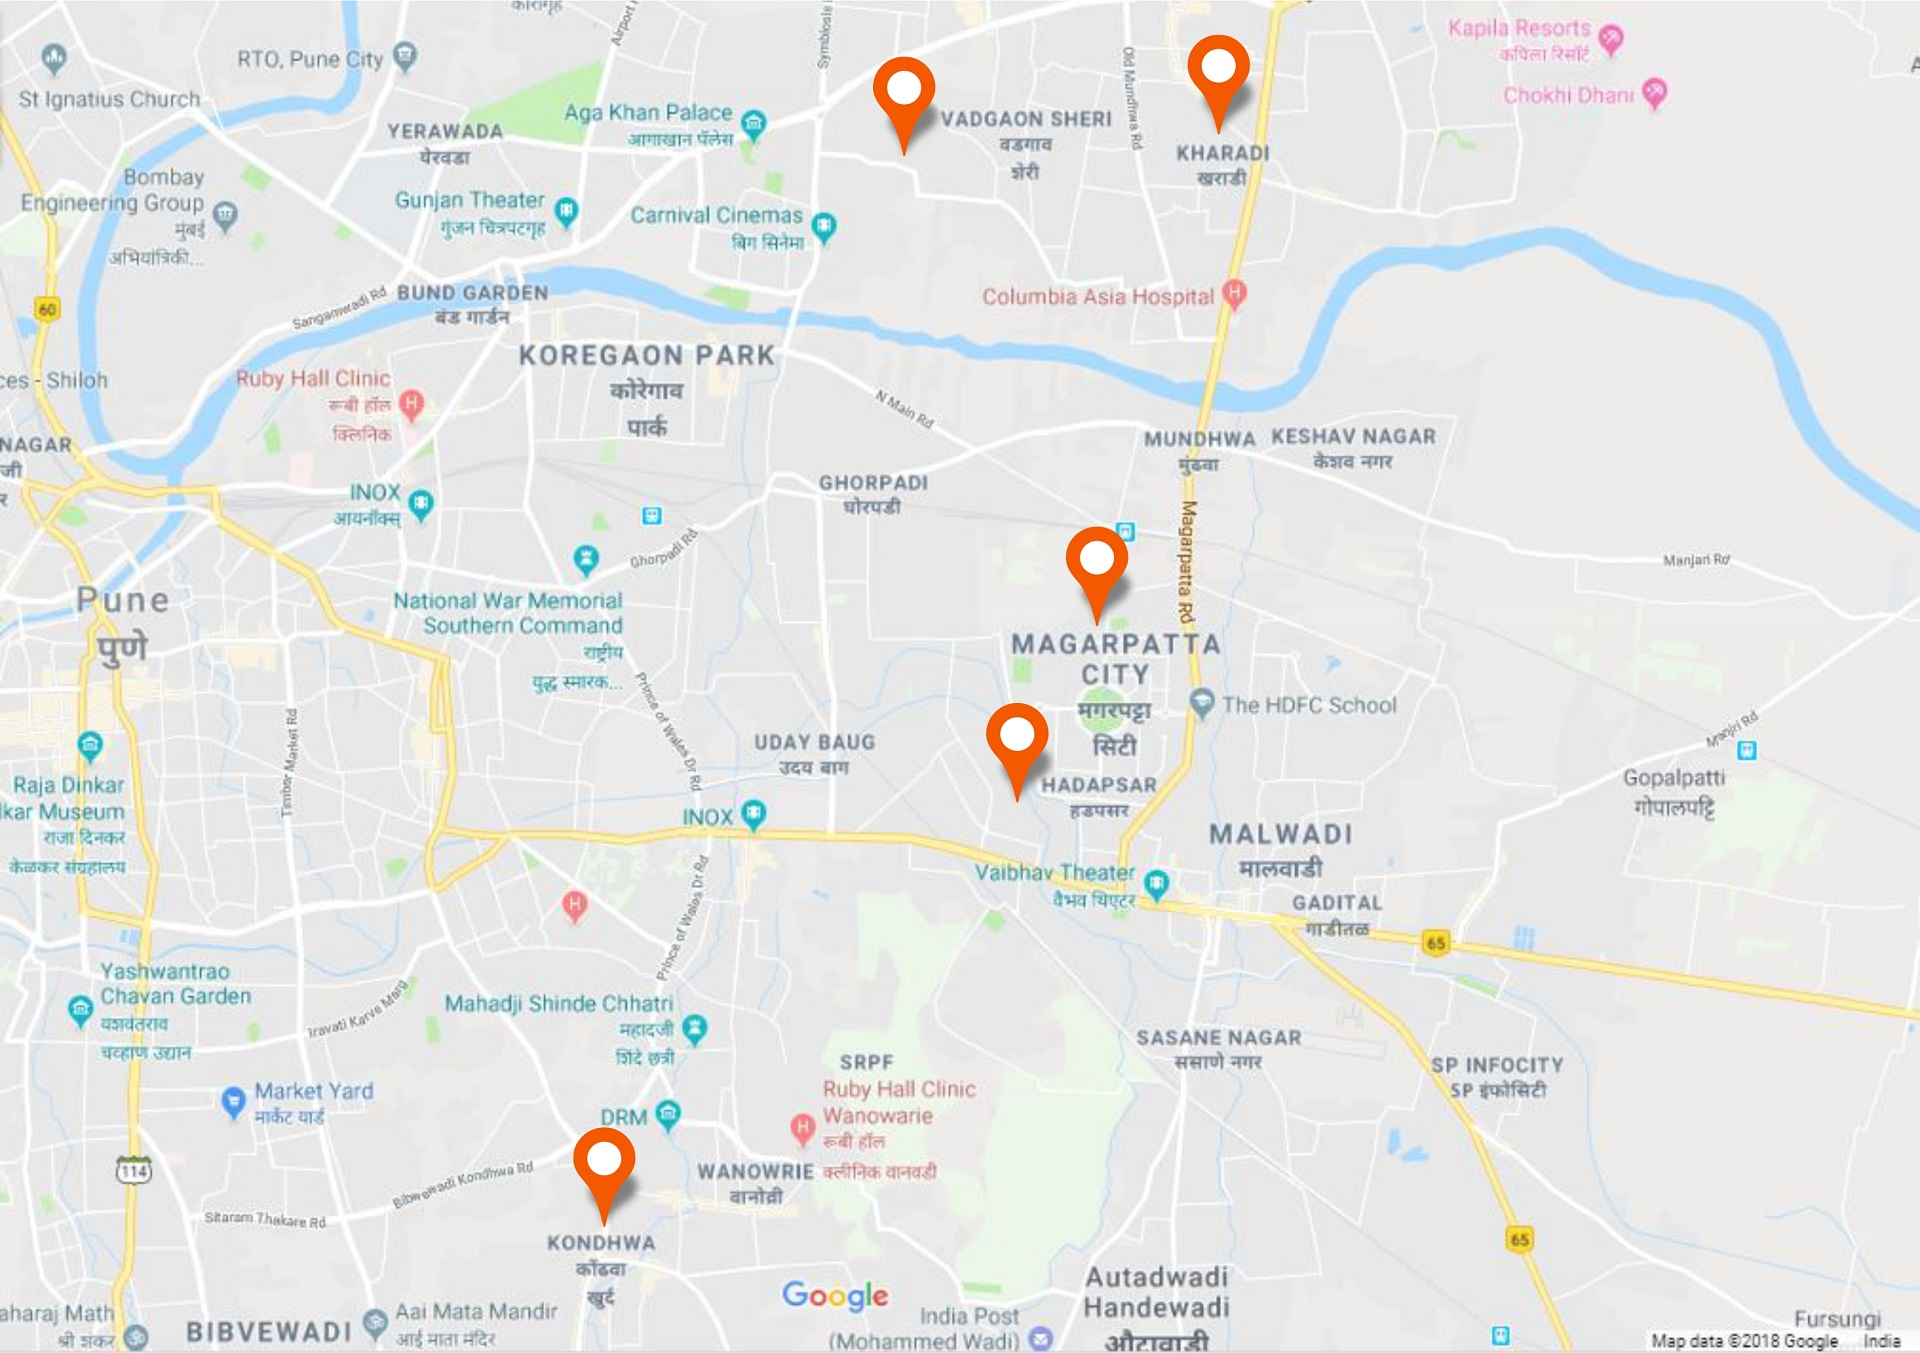 Top Investment Hotspots in the Eastern Corridor of Pune